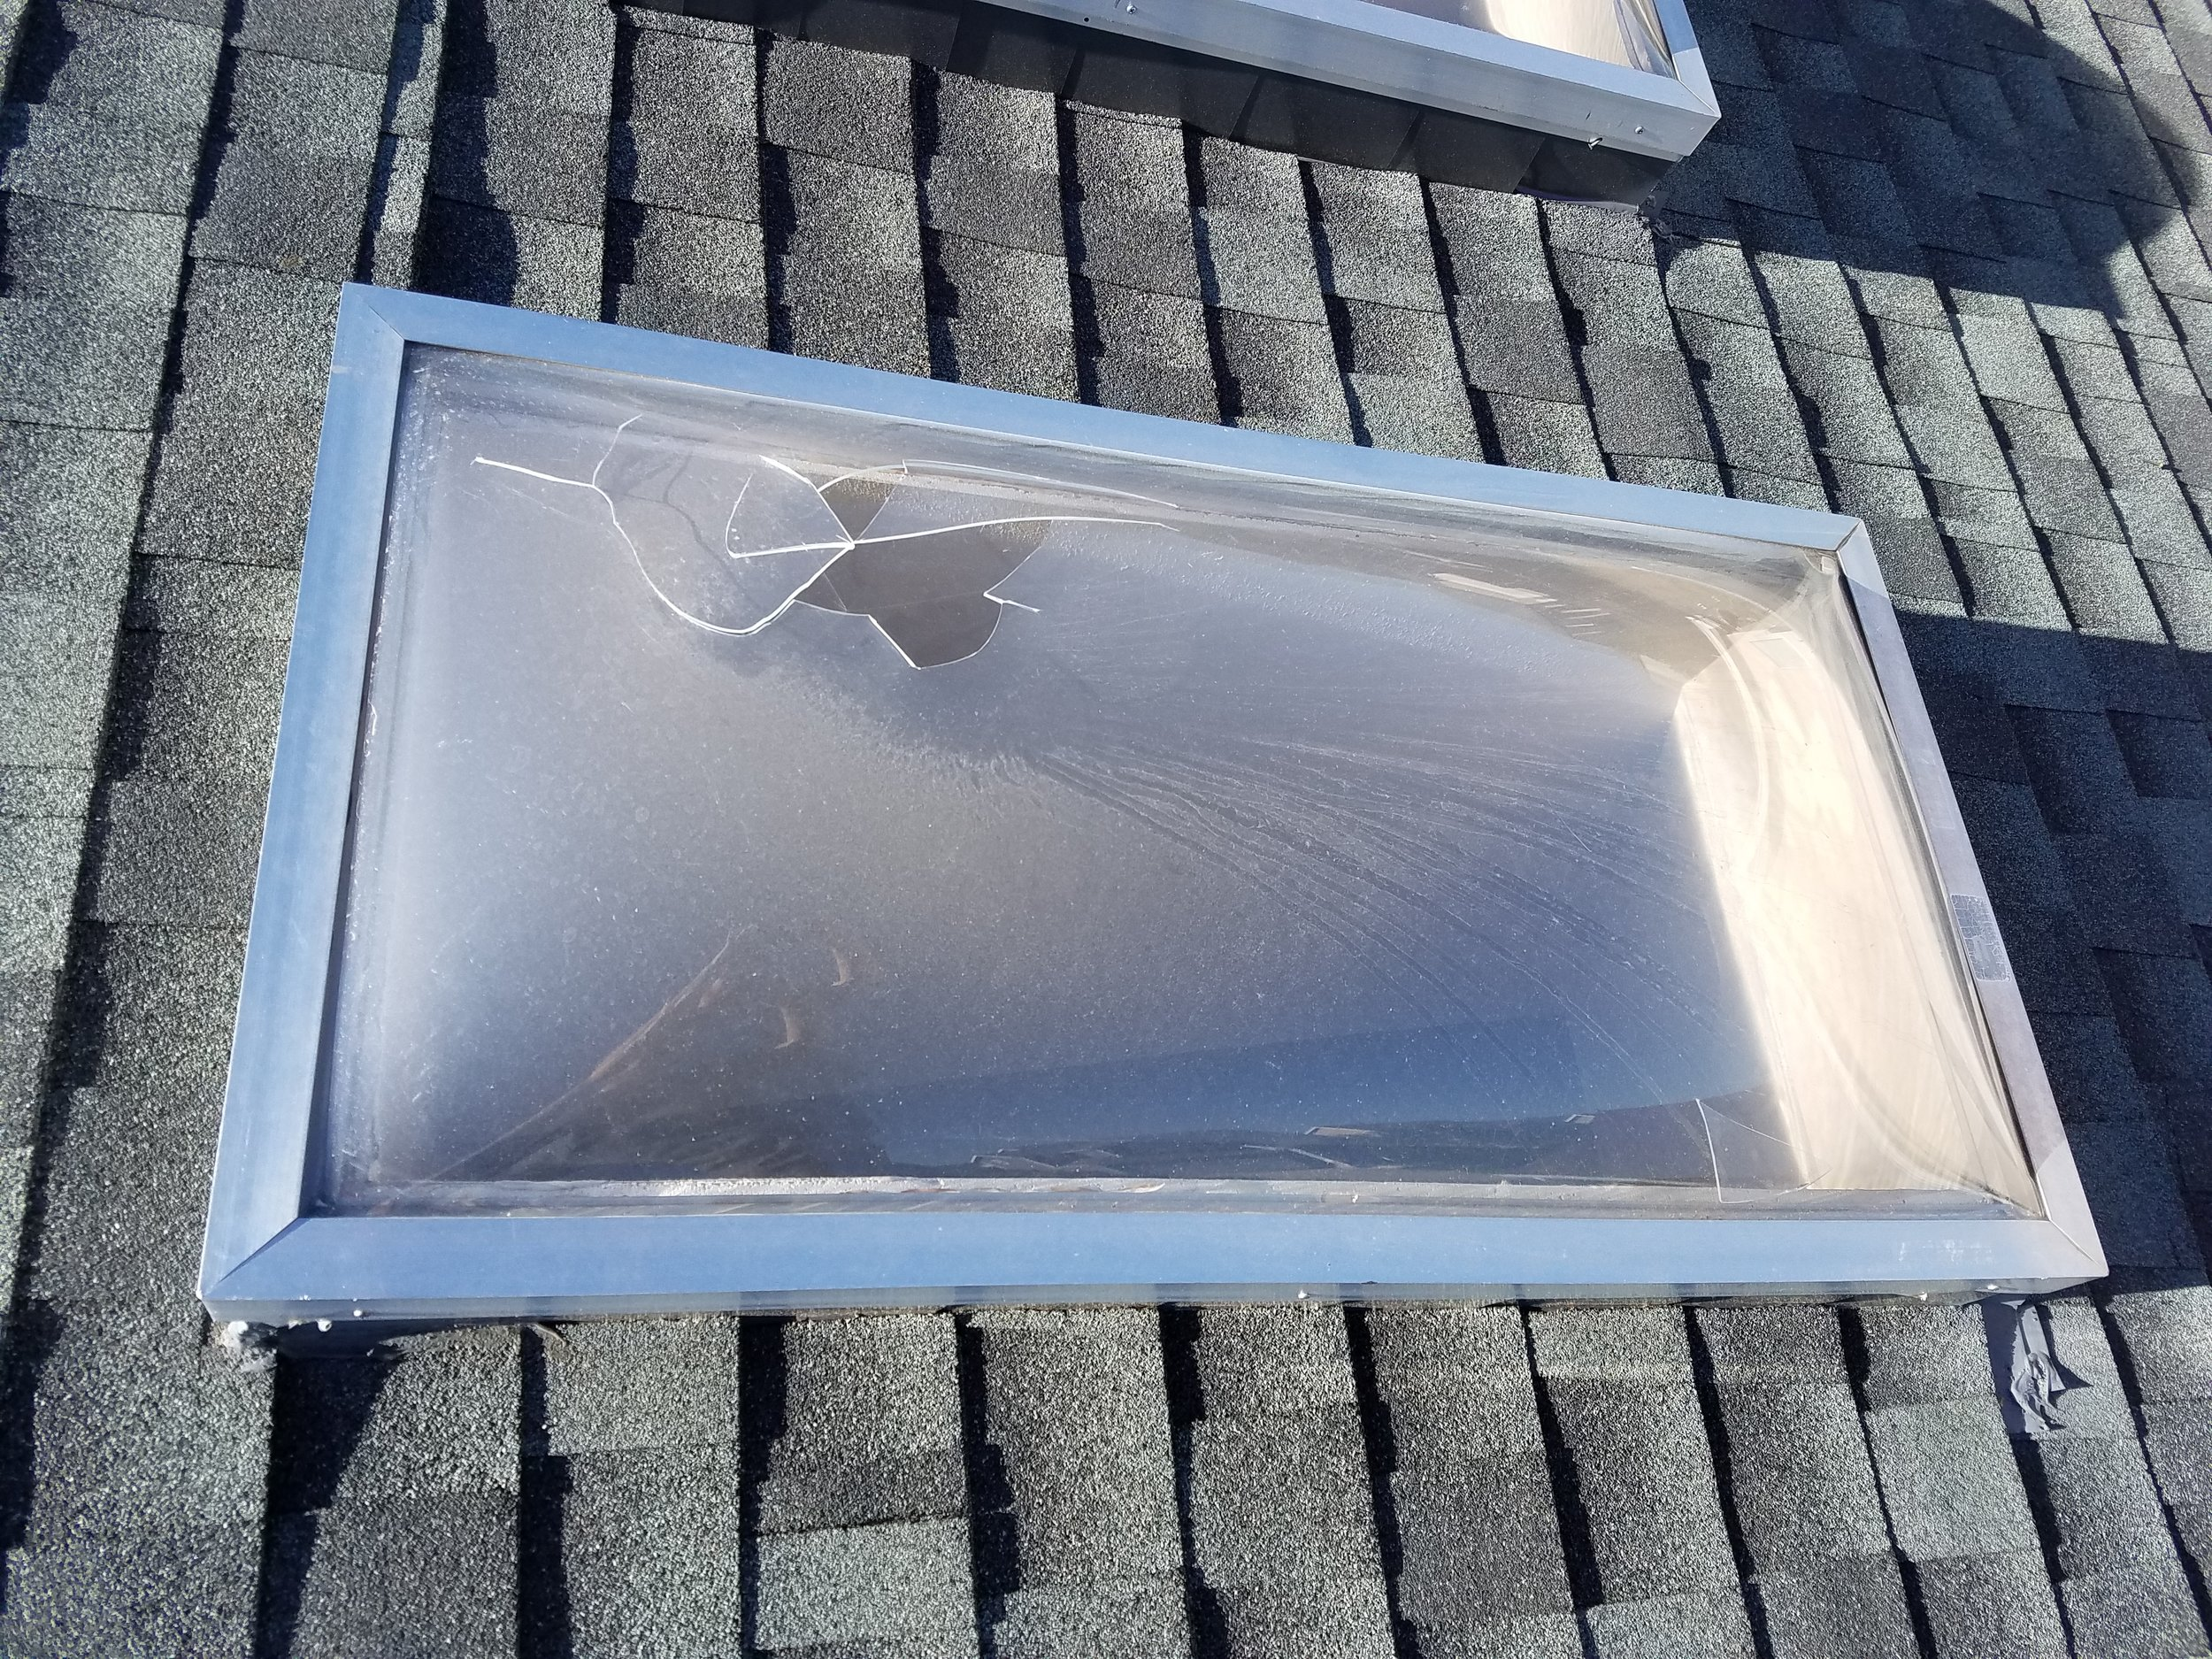 Cracked skylights or weather covers will lead to moisture intrusion inside the attic and home. With our frequent hail here in Colorado, I recommend having your entire roof inspected every 5-years.